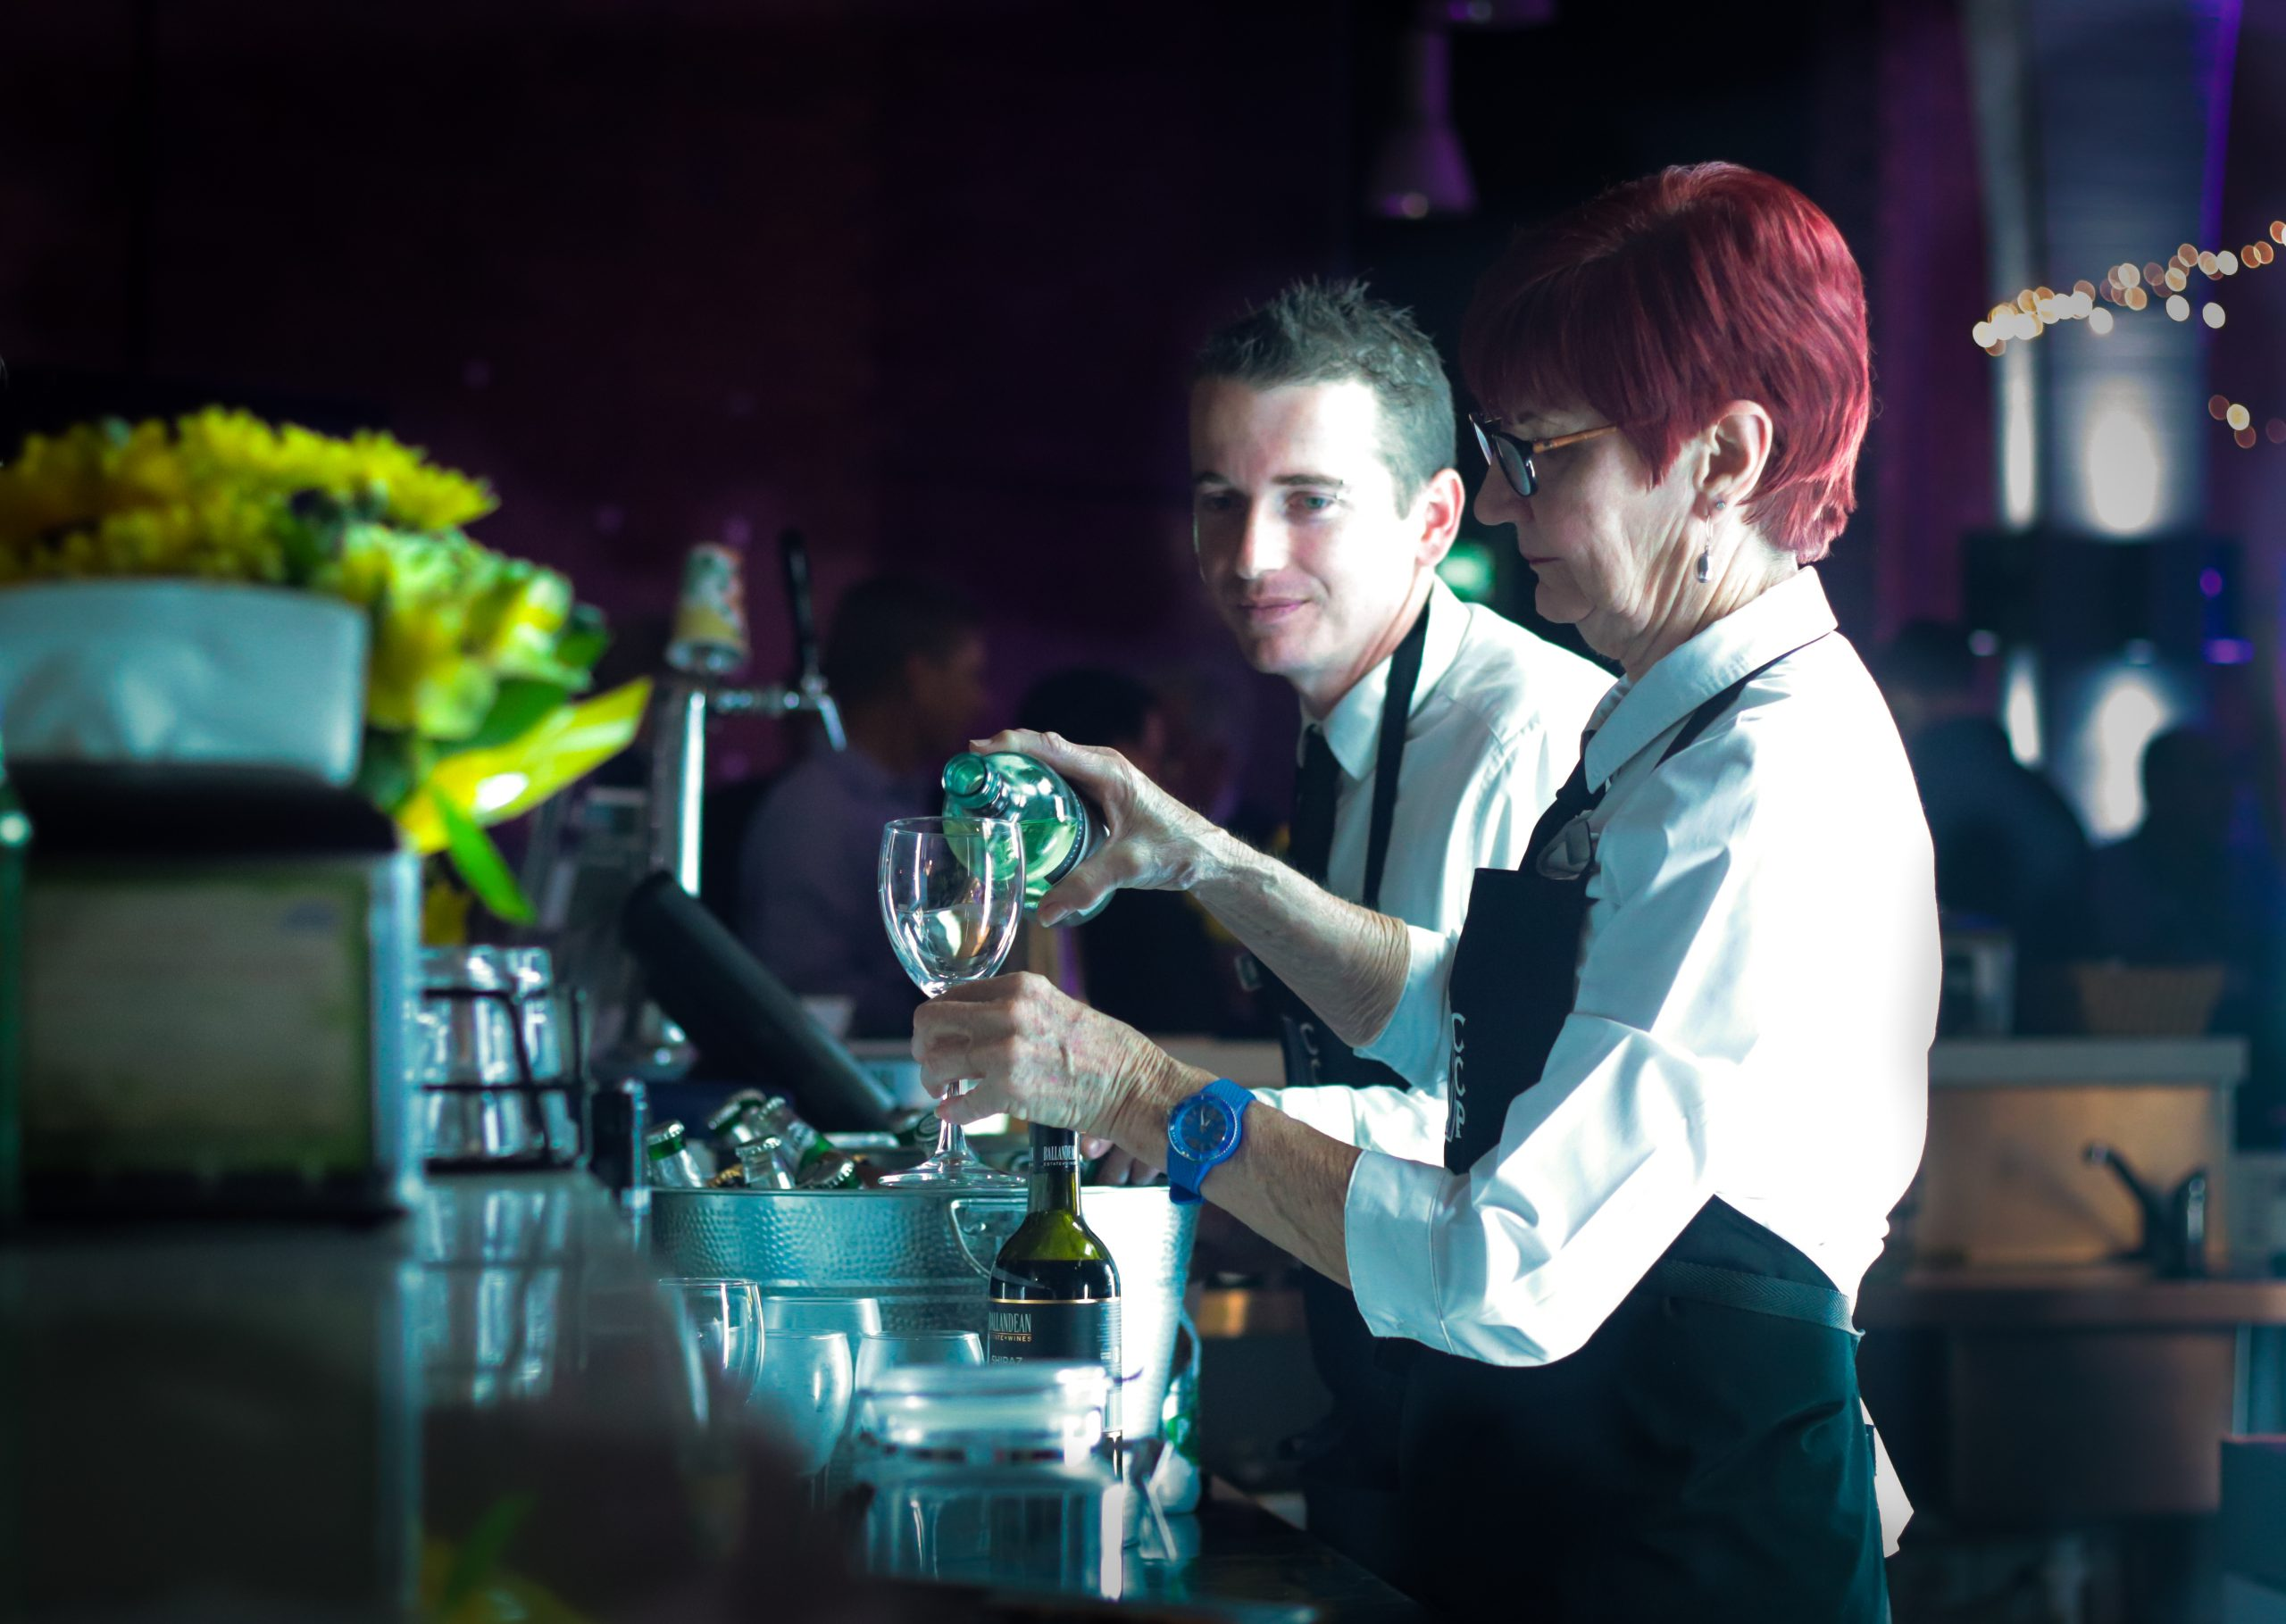 CCP staff preparing wine for guests